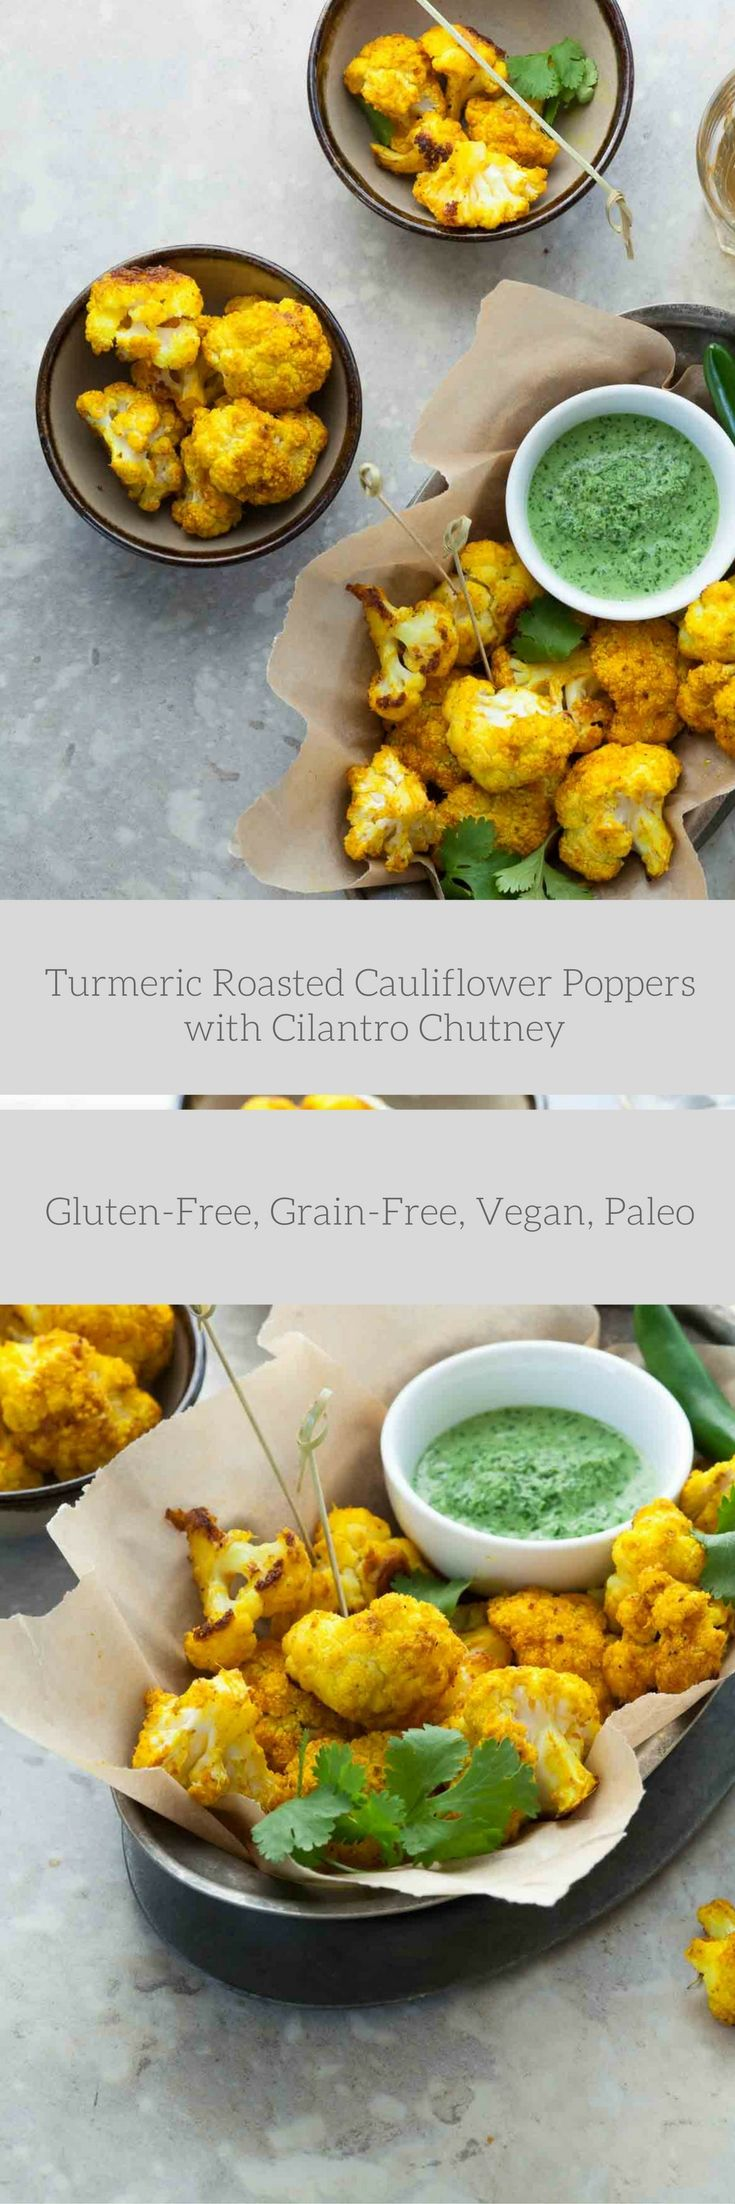 Turmeric roasted cauliflower served with cilantro chutney is an easy appetizer or side dish with lots of bright color and flavor. I should start by telling you that I've always loved cauliflower. …